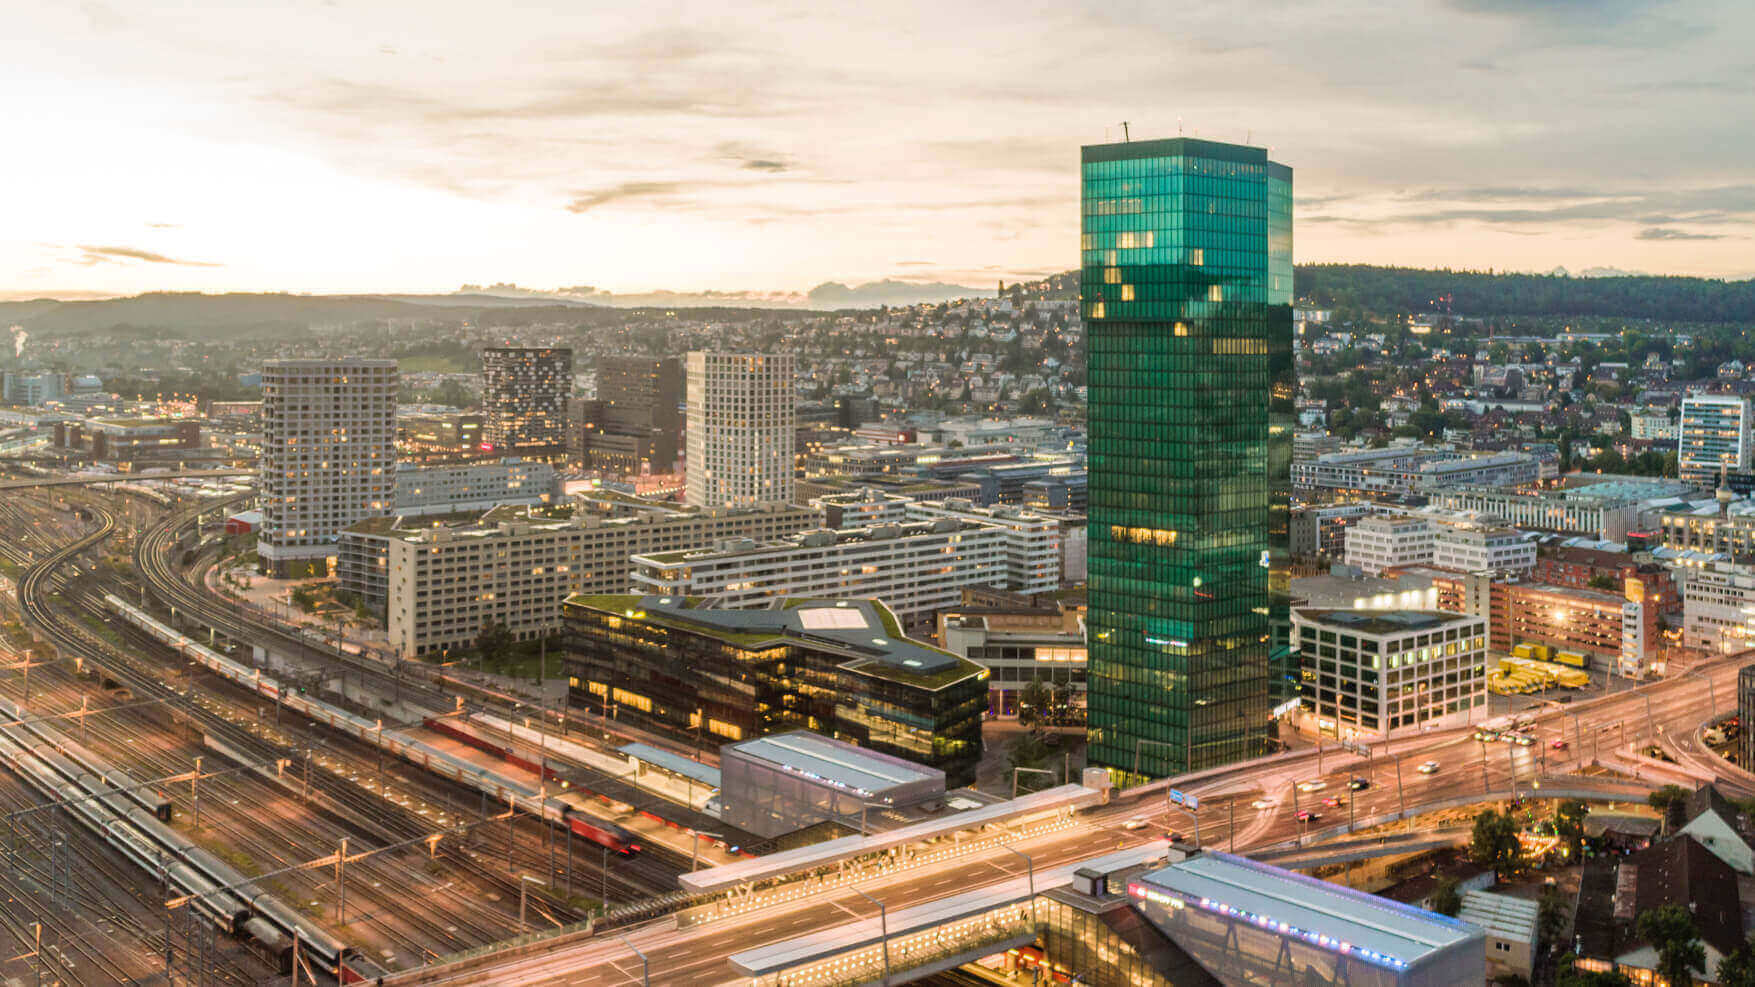 Successful structuring of a 83.9% loan-to-value at 2.06% on a commercial building in Zurich